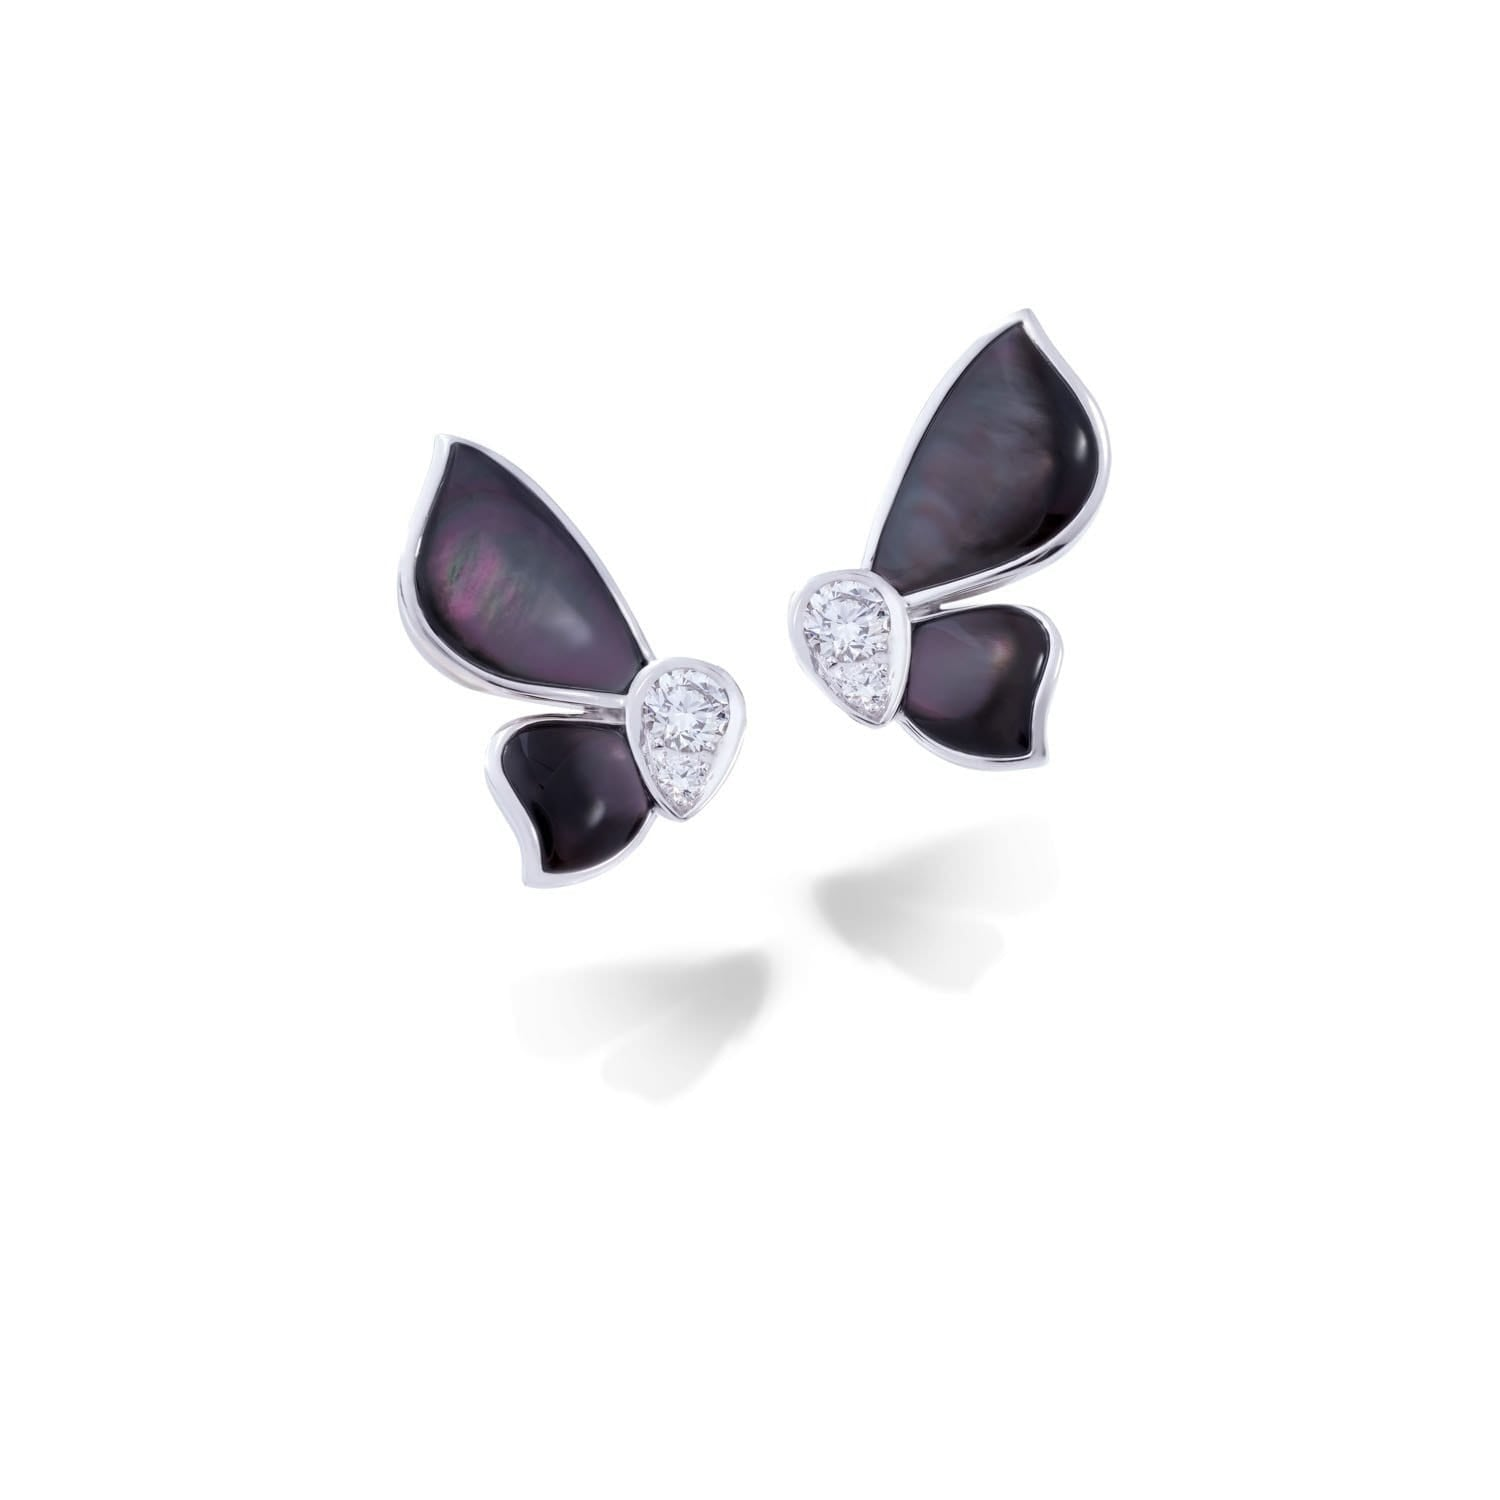 DAY&NIGHT Earrings - STENZHORN JEWELLERY